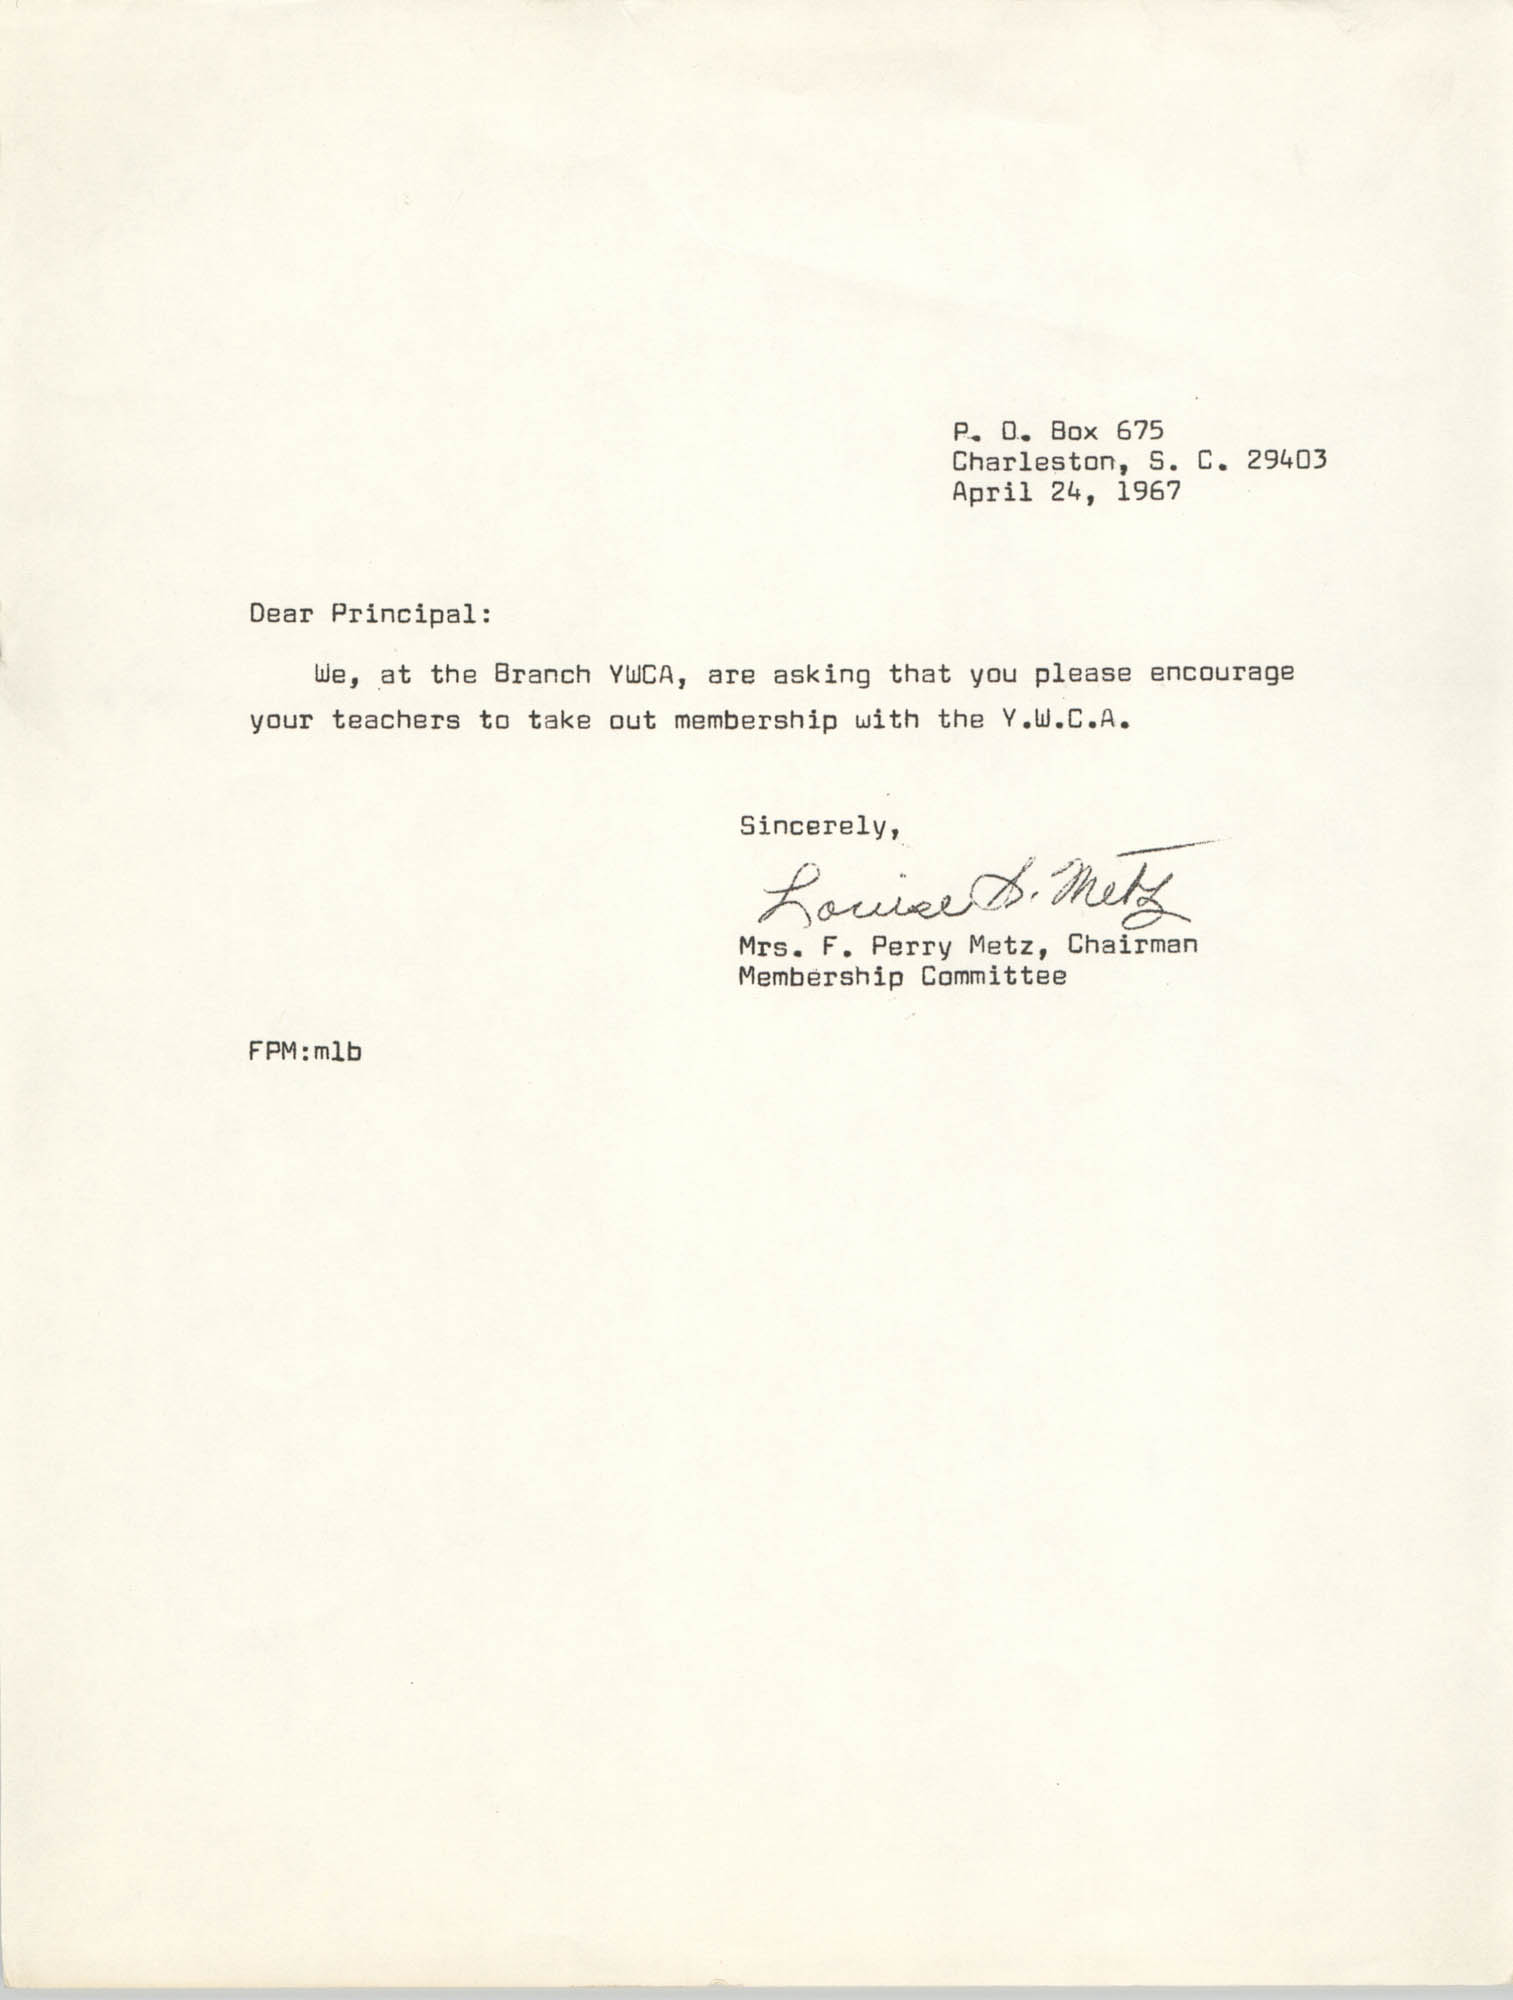 Letter from Mrs. F. Perry Metz, April 24, 1967